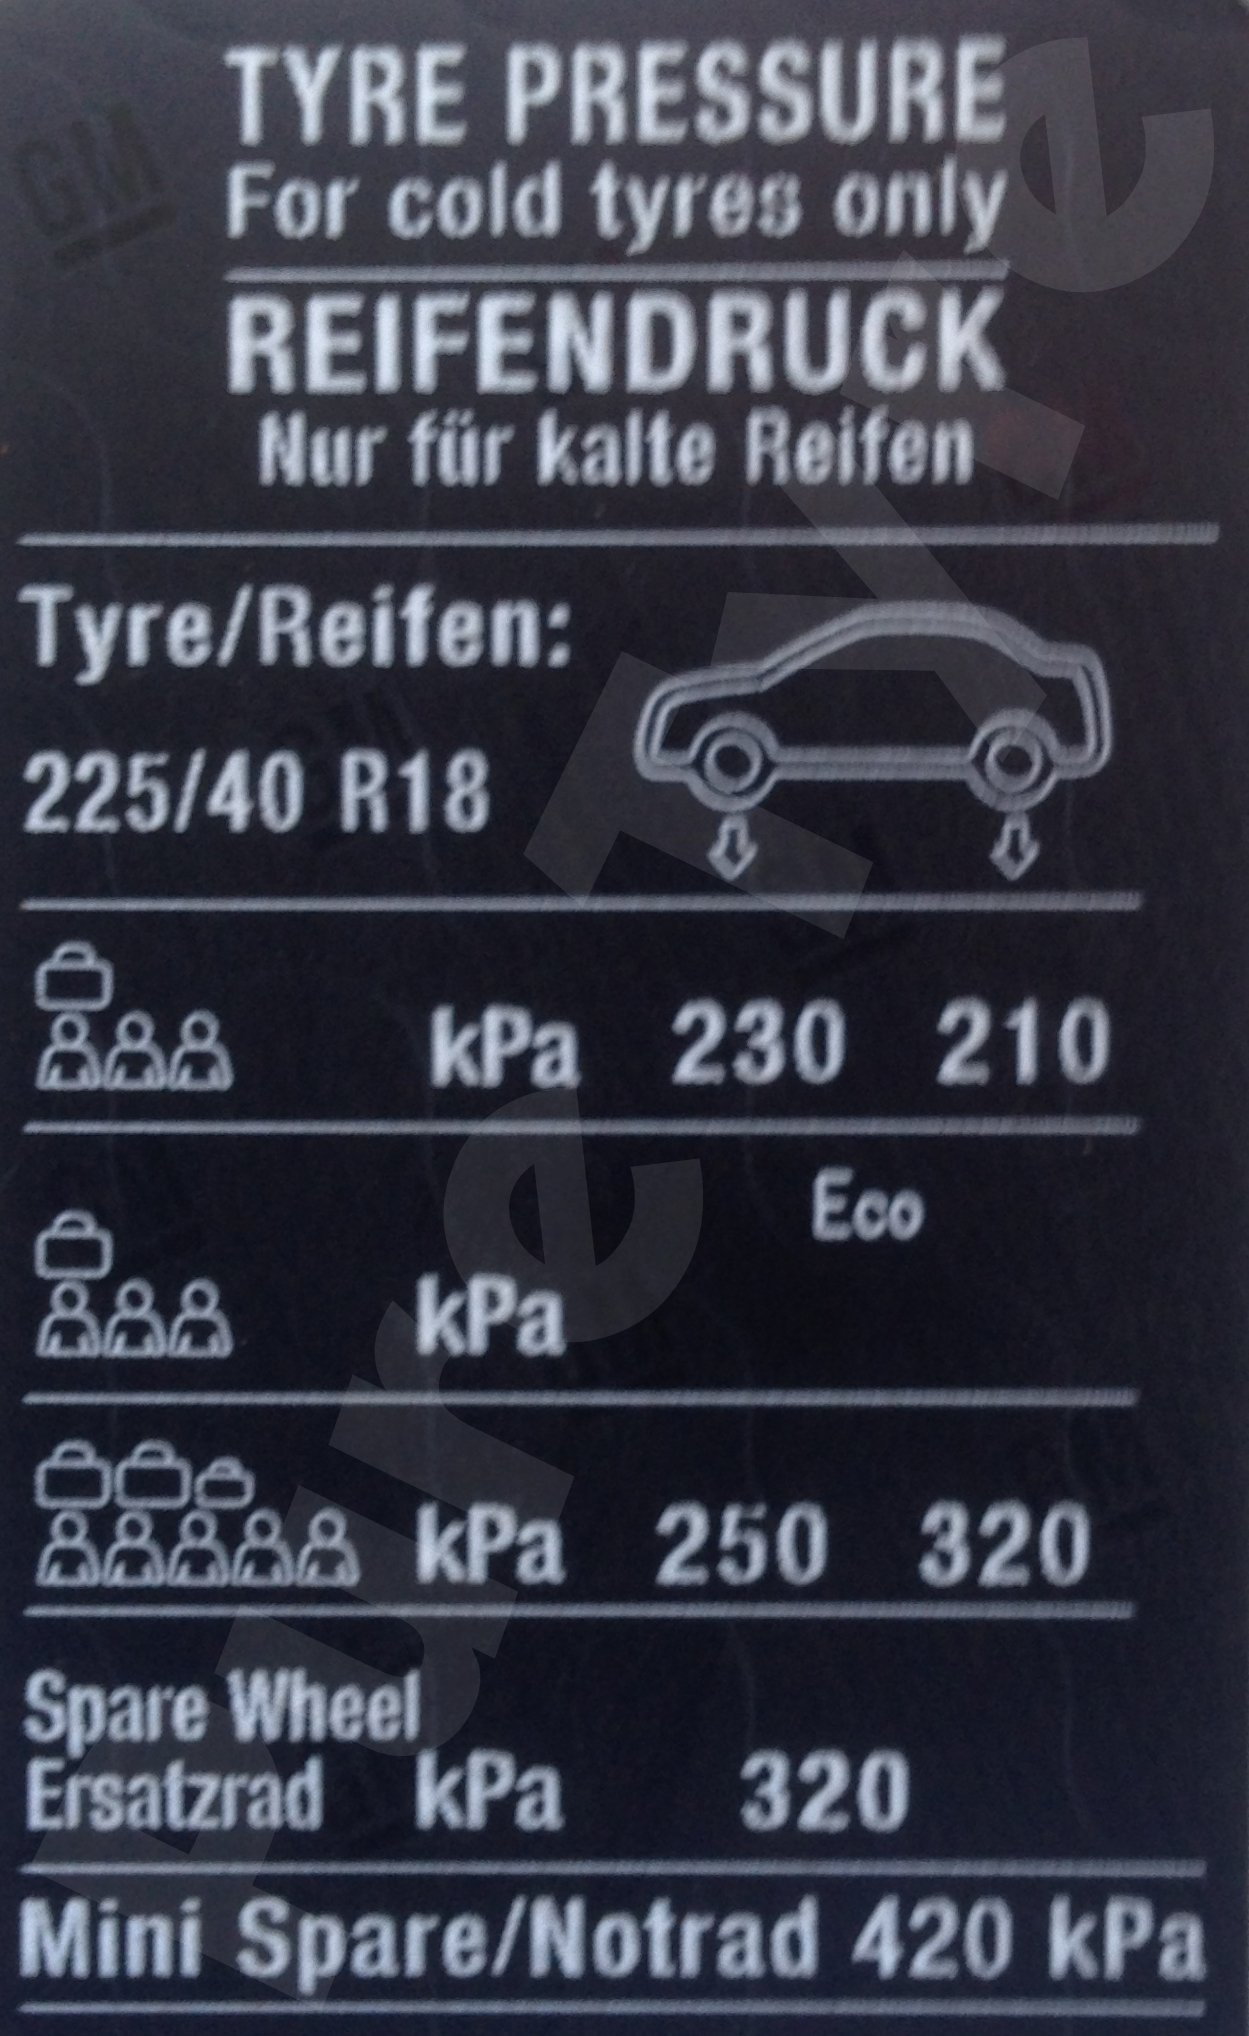 Car Battery Size Chart >> Vauxhall Meriva 225/40R18 on Tyre Pressure Placard   Pure Tyre 01603 462959